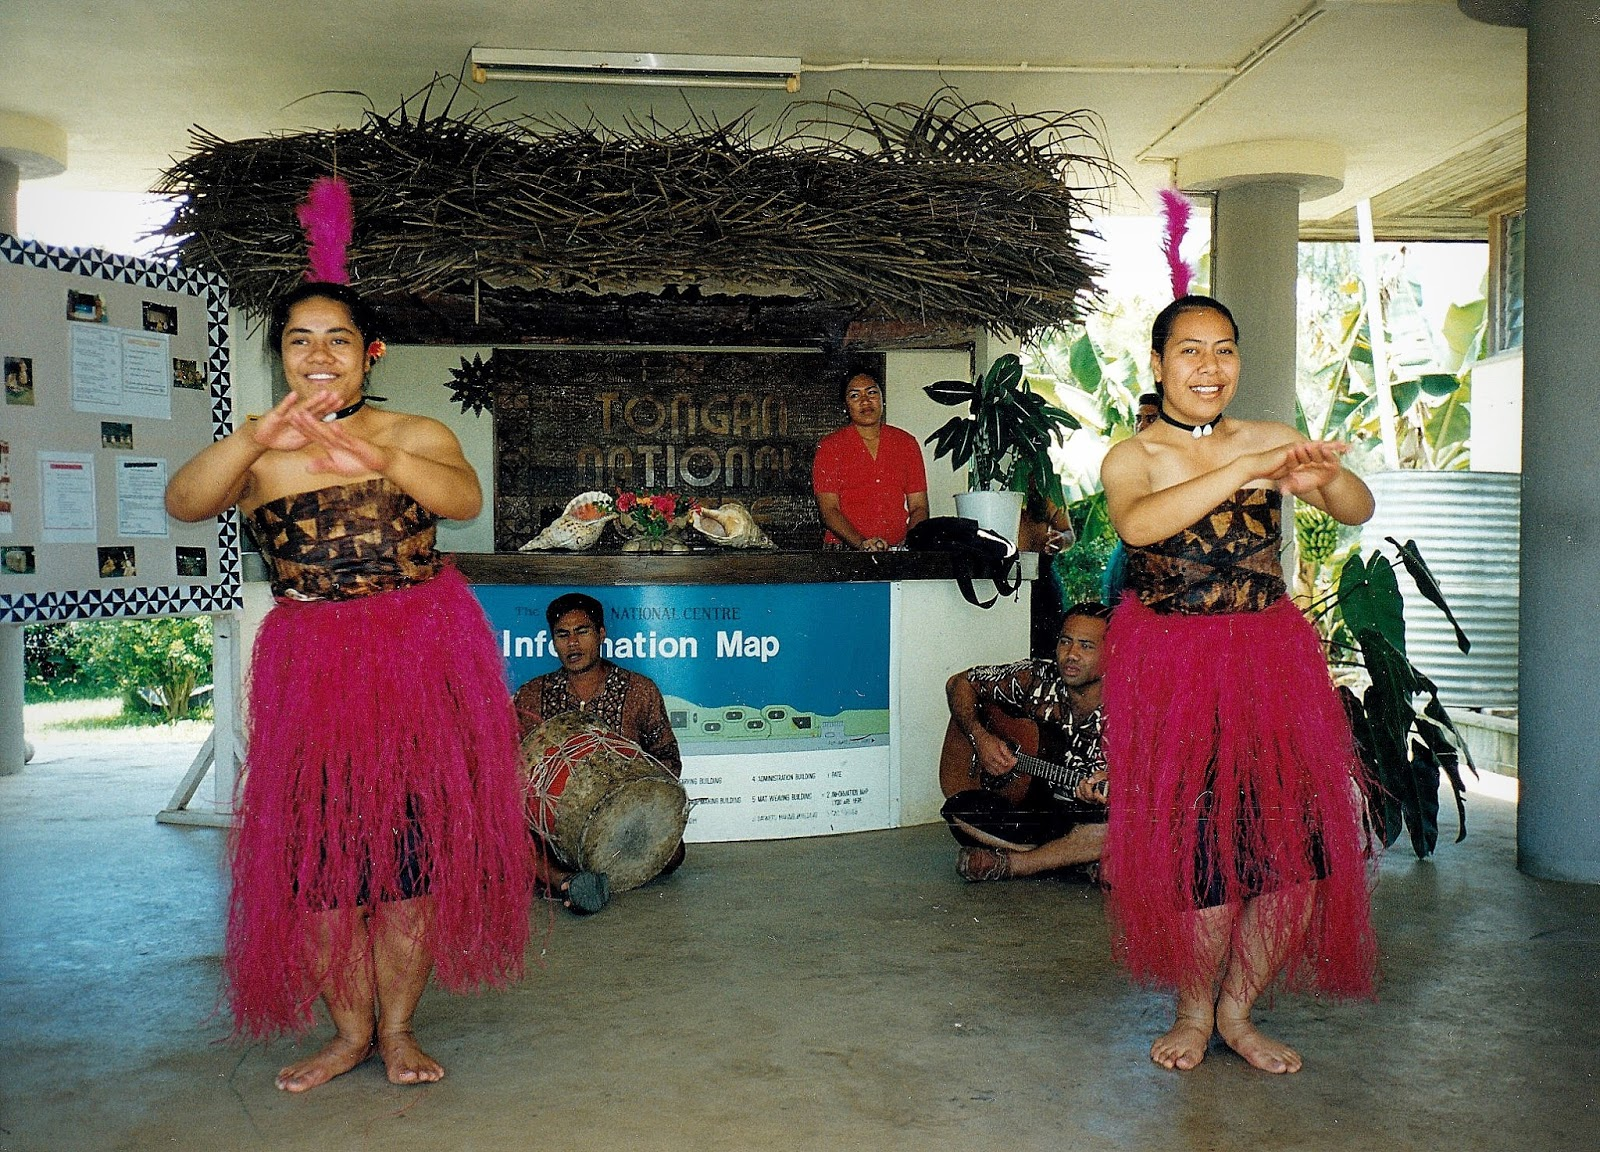 At this Tongan feast, there was also a dancing performance!